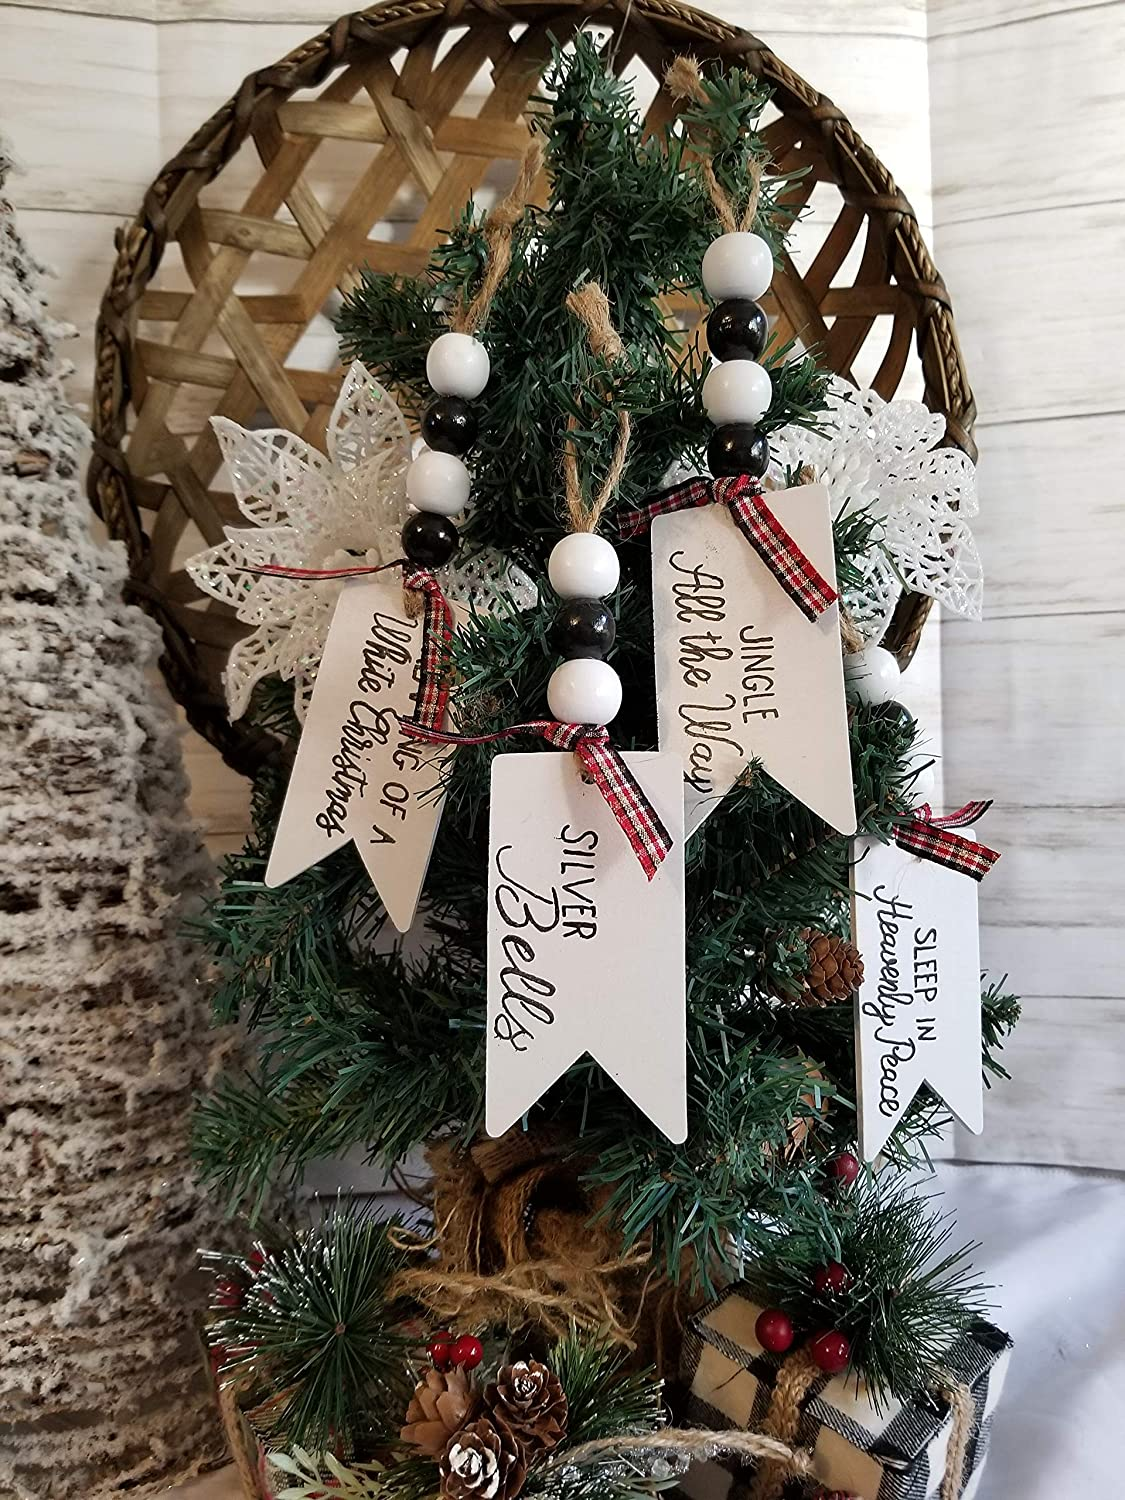 Personalized Rae Dunn Inspired Christmas ornaments